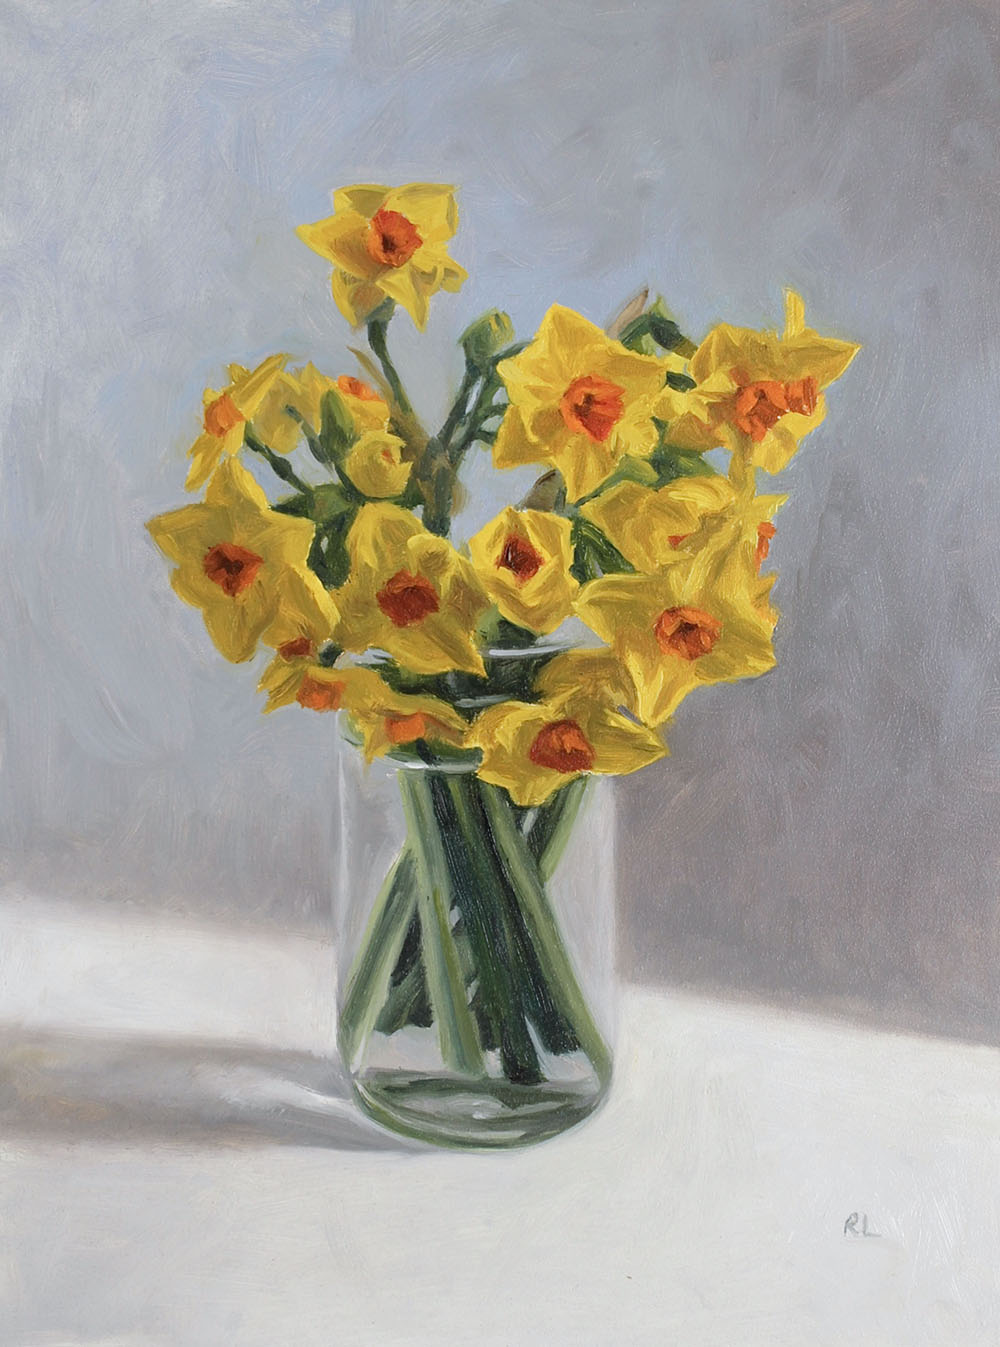 Yellow & Orange Narcissi in a Glass Jar